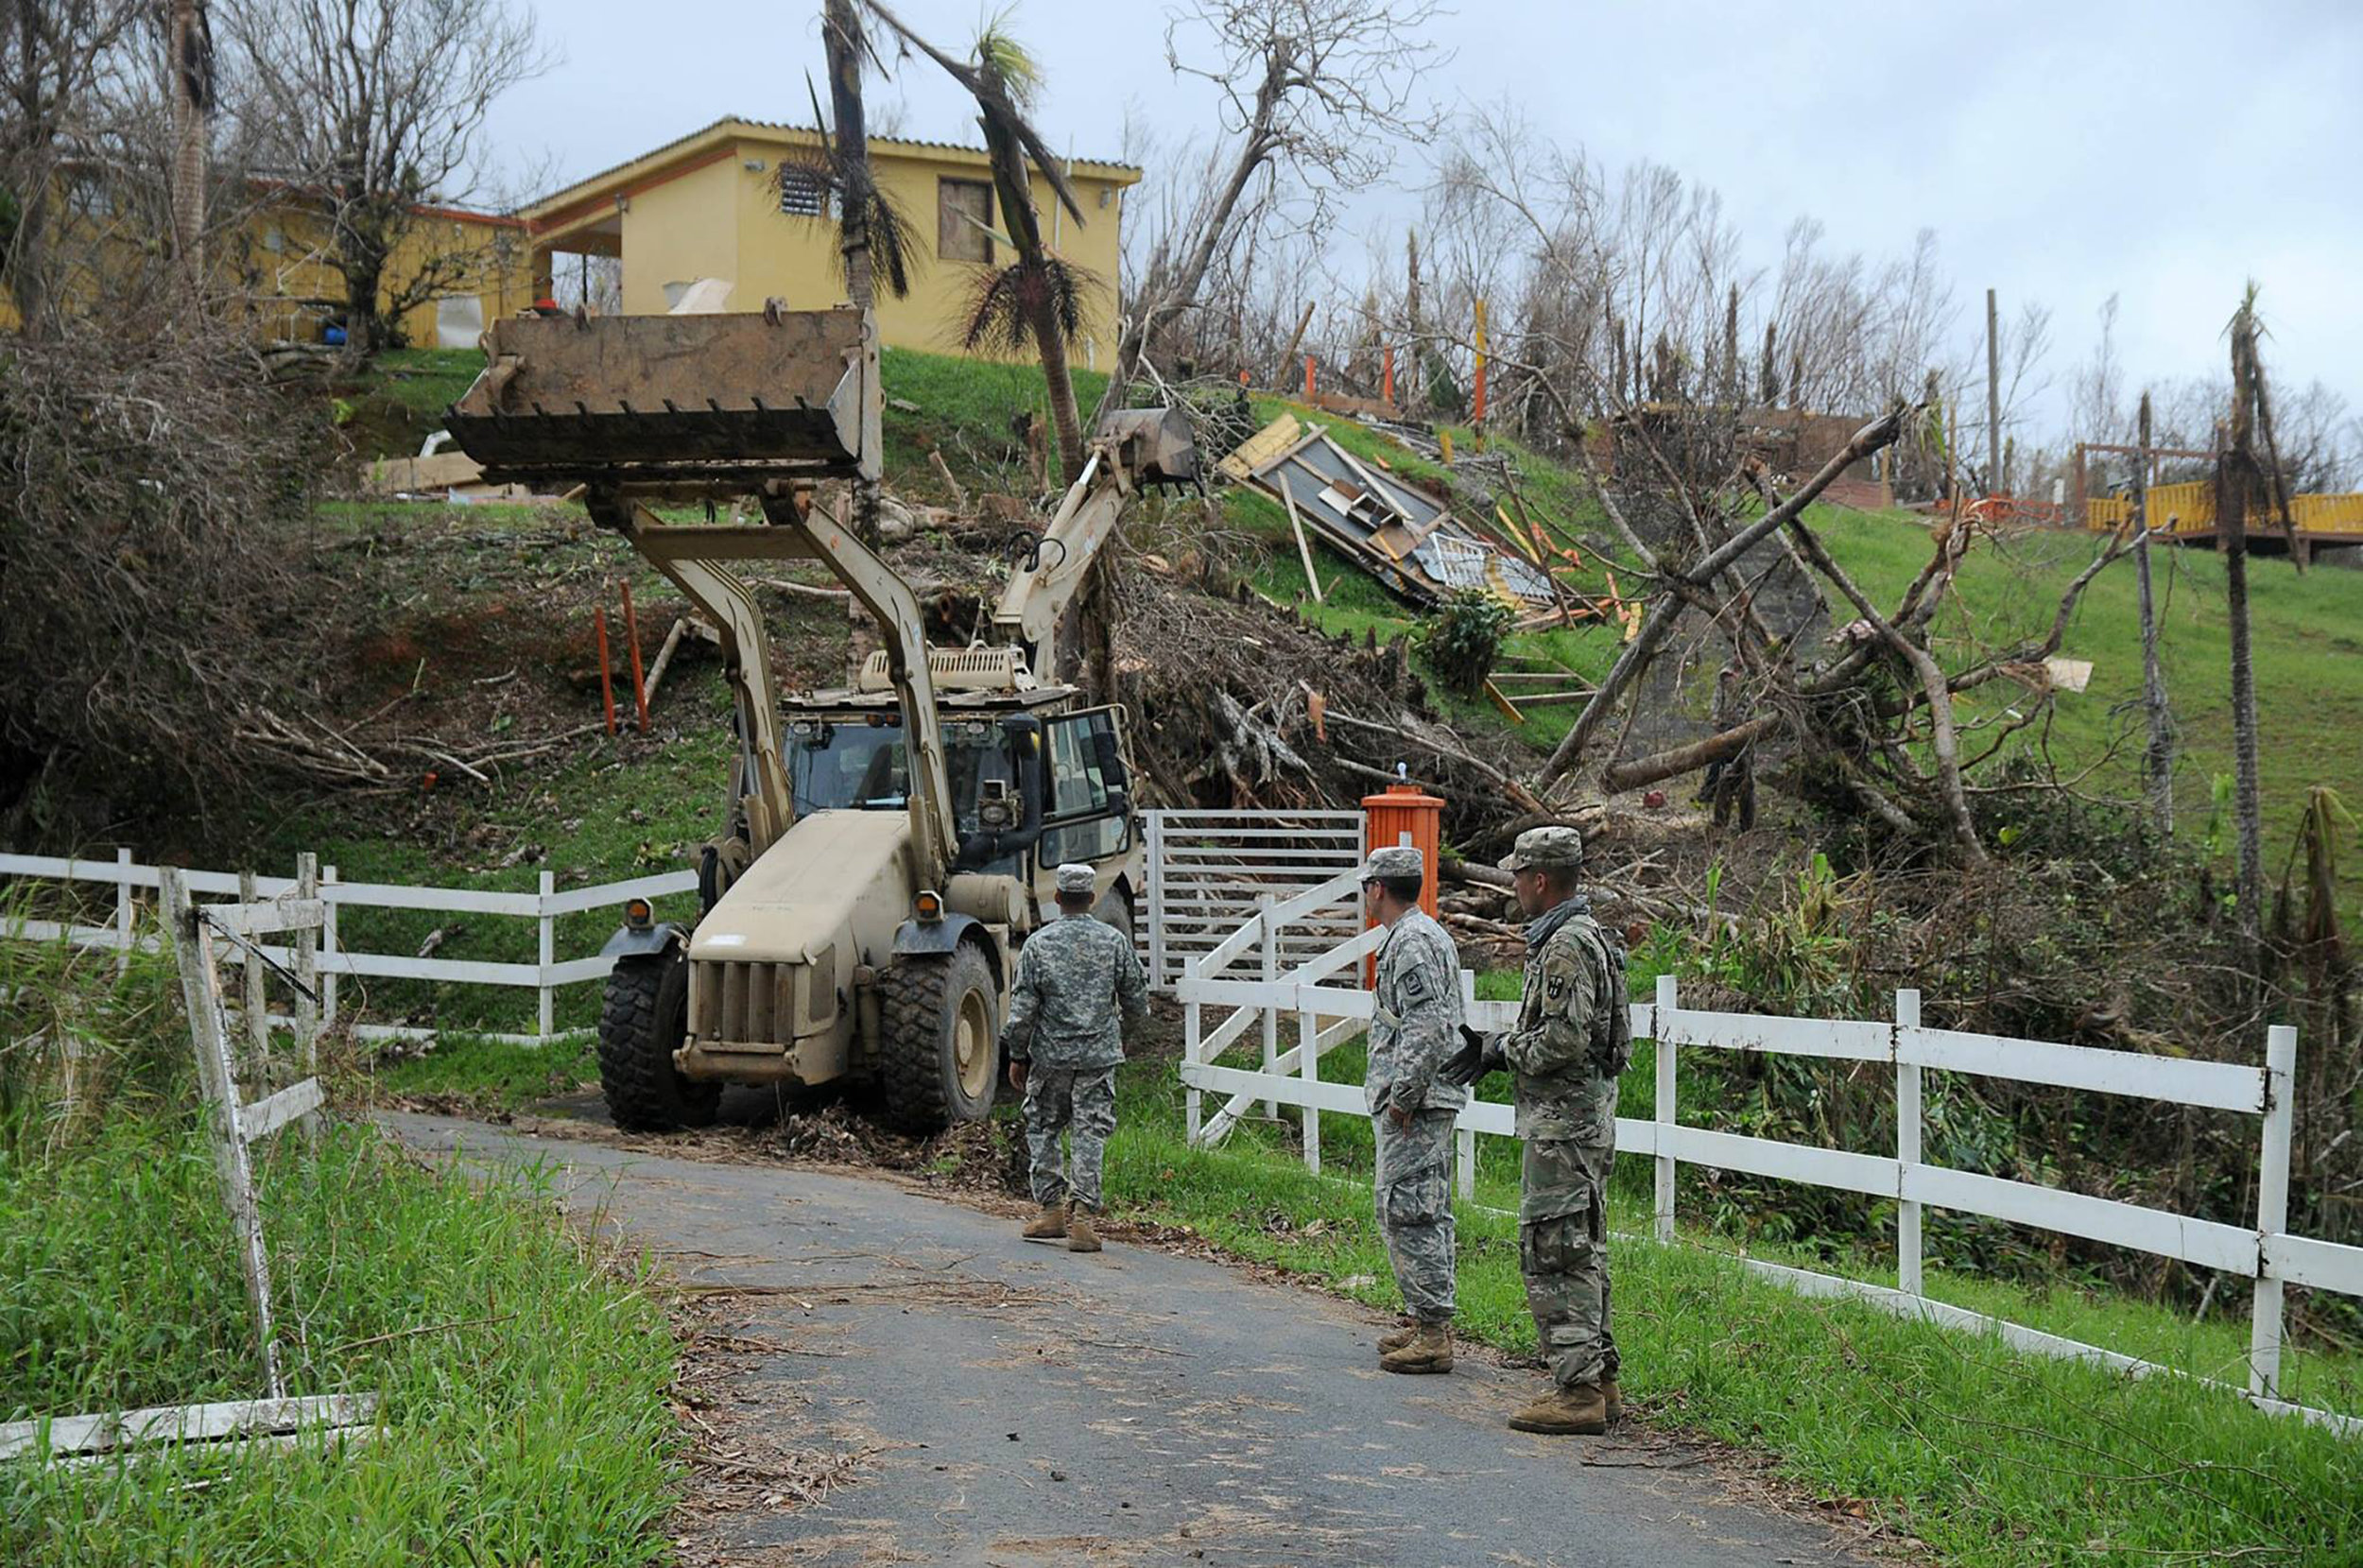 Members of the Puerto Rico Army National Guard are (pictured above) clearing an area in the municipality of Cayey, following Hurrricane Maria's destruction. The SUNY system has decreased the tuition that Puerto Rican and Virgin Islander students will have to pay in order to mitigate their financial difficulties. (Wilma Orozco/Creative Commons)